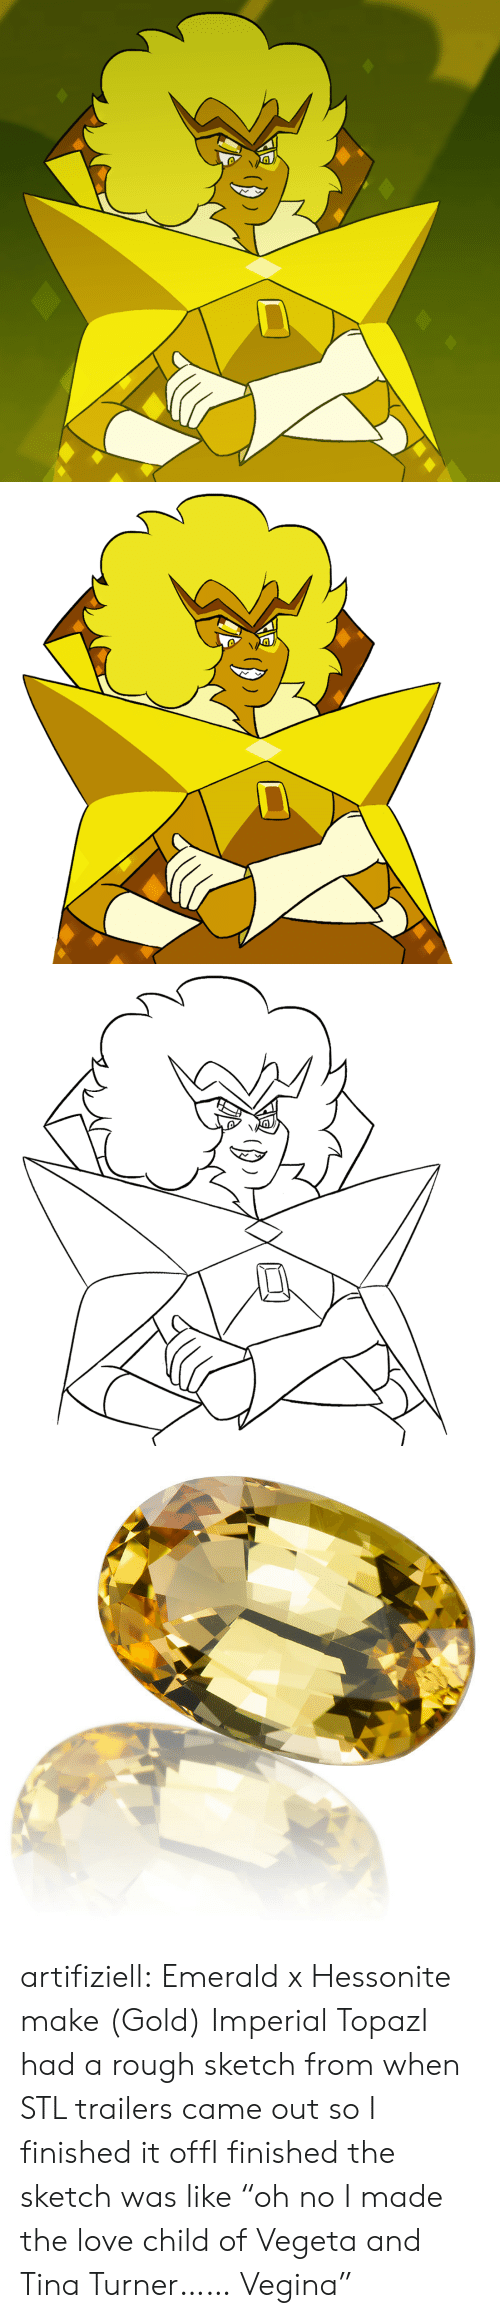 "Love, Tina Turner, and Tumblr: artifiziell:  Emerald x Hessonite make (Gold) Imperial TopazI had a rough sketch from when STL trailers came out so I finished it offI finished the sketch was like ""oh no I made the love child of Vegeta and Tina Turner…… Vegina"""